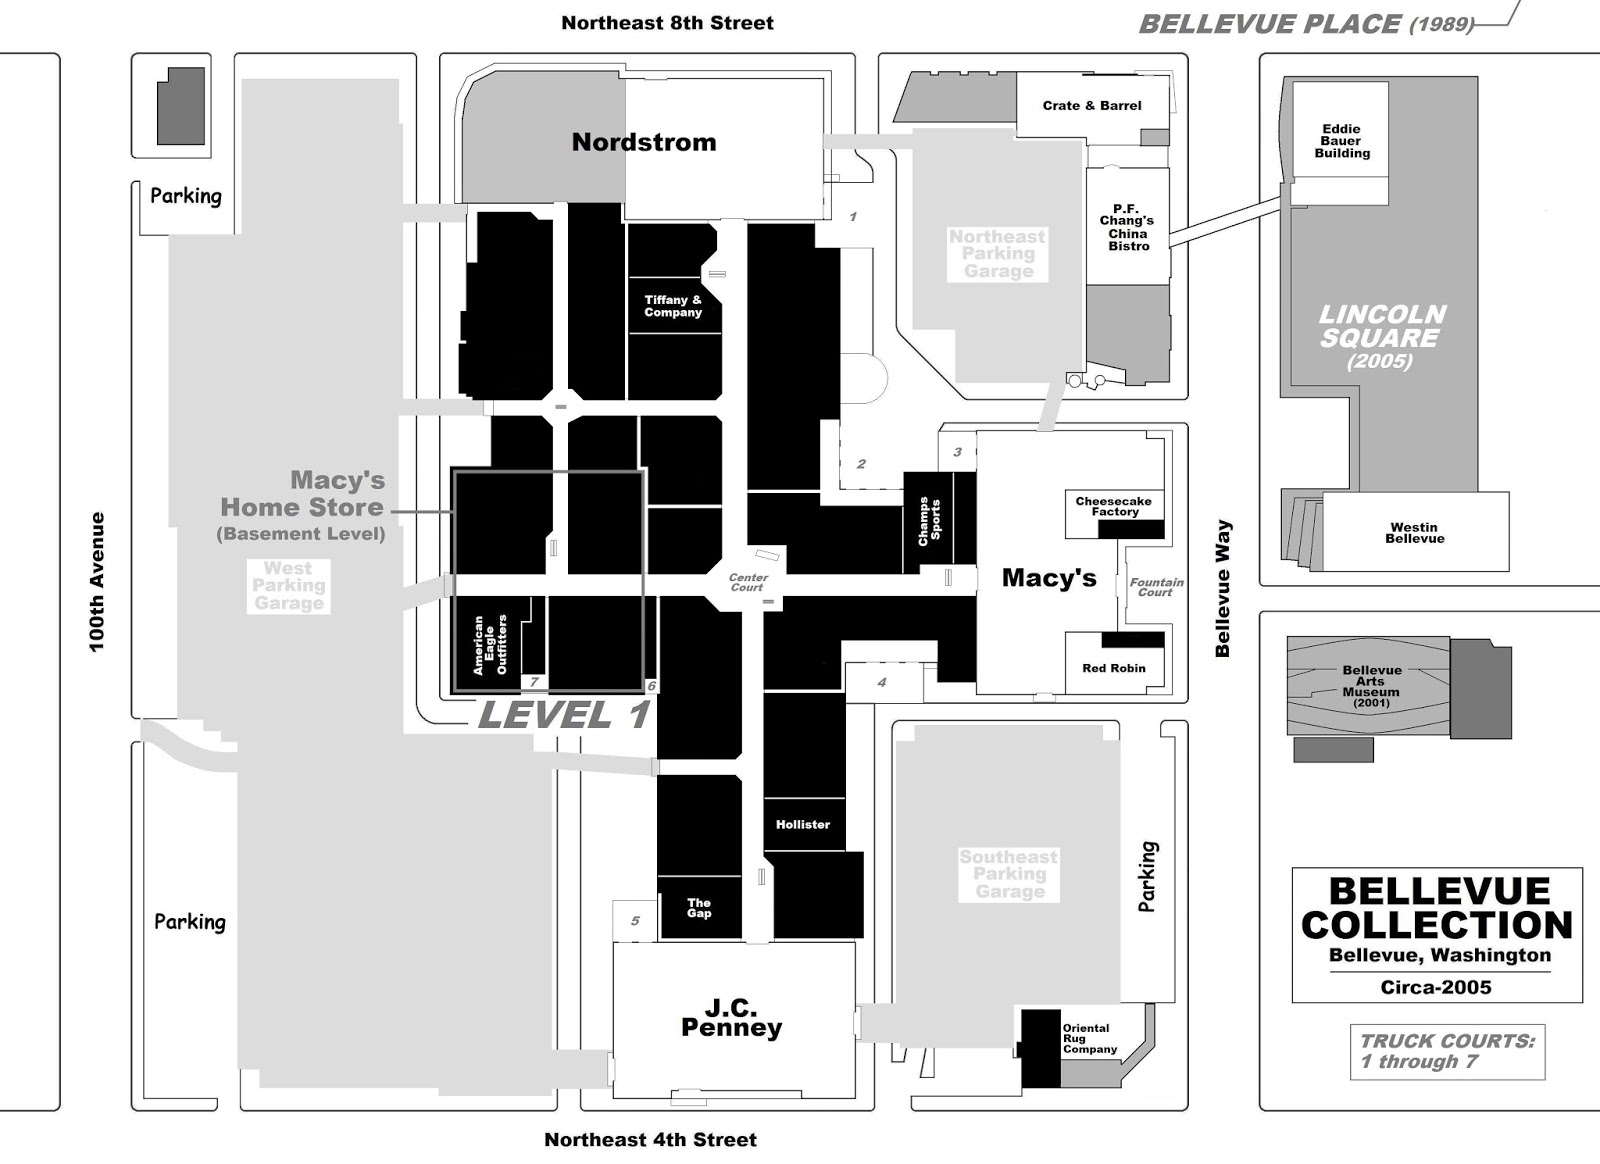 014_Bellevue%2BCollection%2Bplan_2005 Bellevue Square Map on overlake hospital medical center map, washington square map, totem lake mall map, town square store map, bellevue ia map, the shops at willow bend map, bellevue mall map, bellevue collection map, south bellevue map, southcenter mall map, the space needle map, assembly square map, boeing bellevue map, bellevue transit center map, bellevue place map, bellevue college map, bellevue washington zip code map, glenbrook square map, bellevue wa map, city of bellevue ohio map,